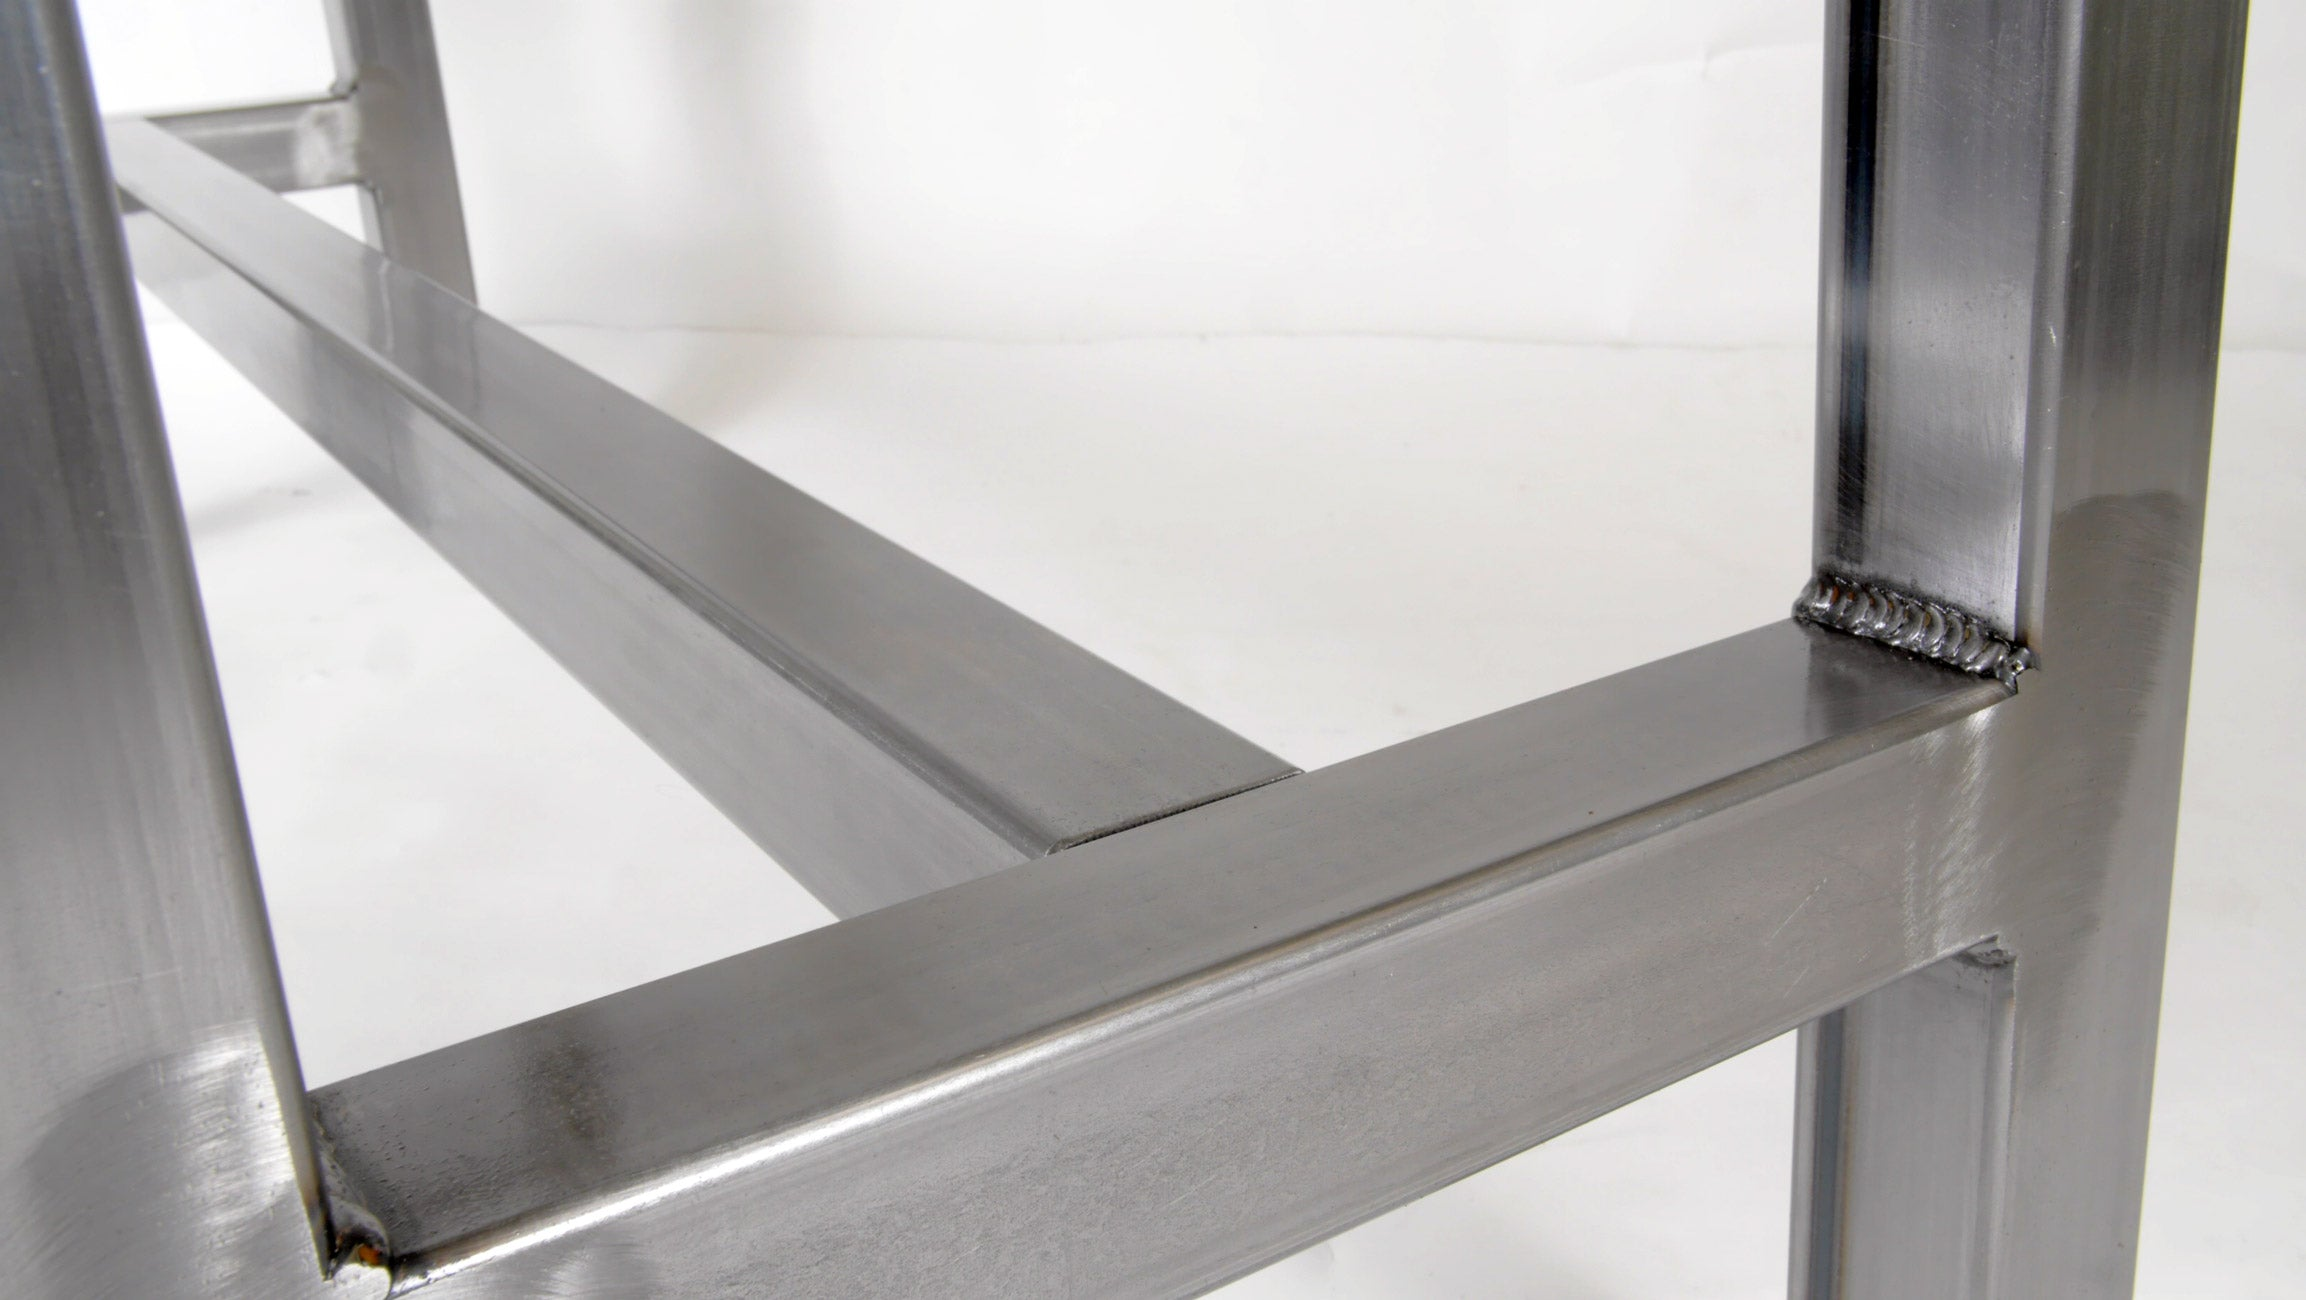 'Chassis' metal table base in clear sealant